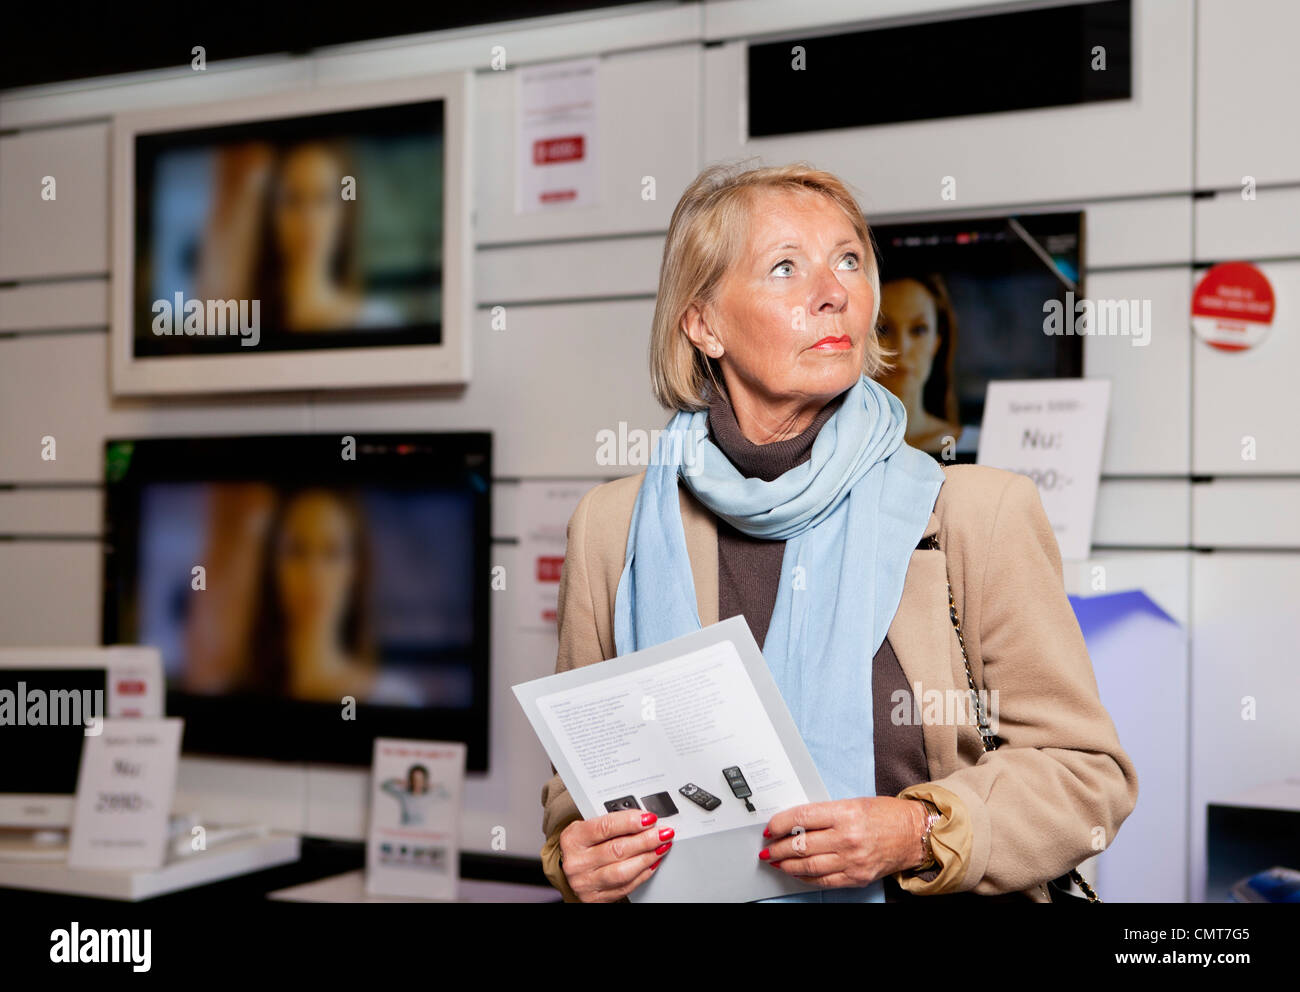 Woman holding product brochure at TV store - Stock Image